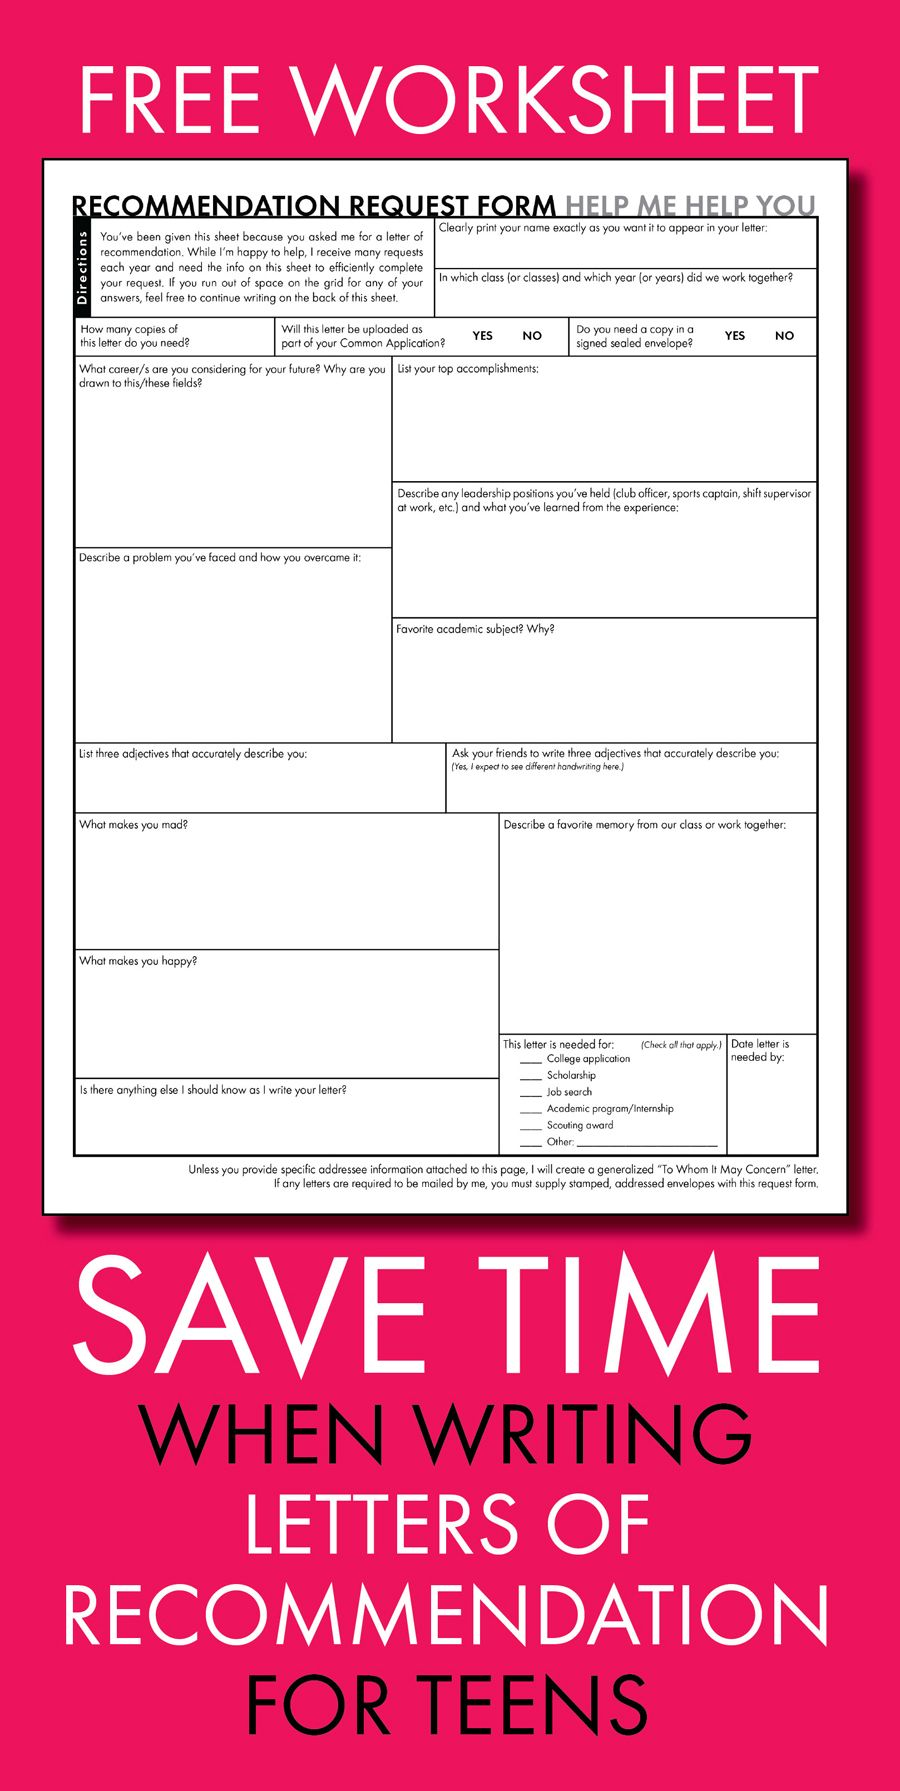 Free Worksheet To Save Time When Writing Letters Of Recommendation